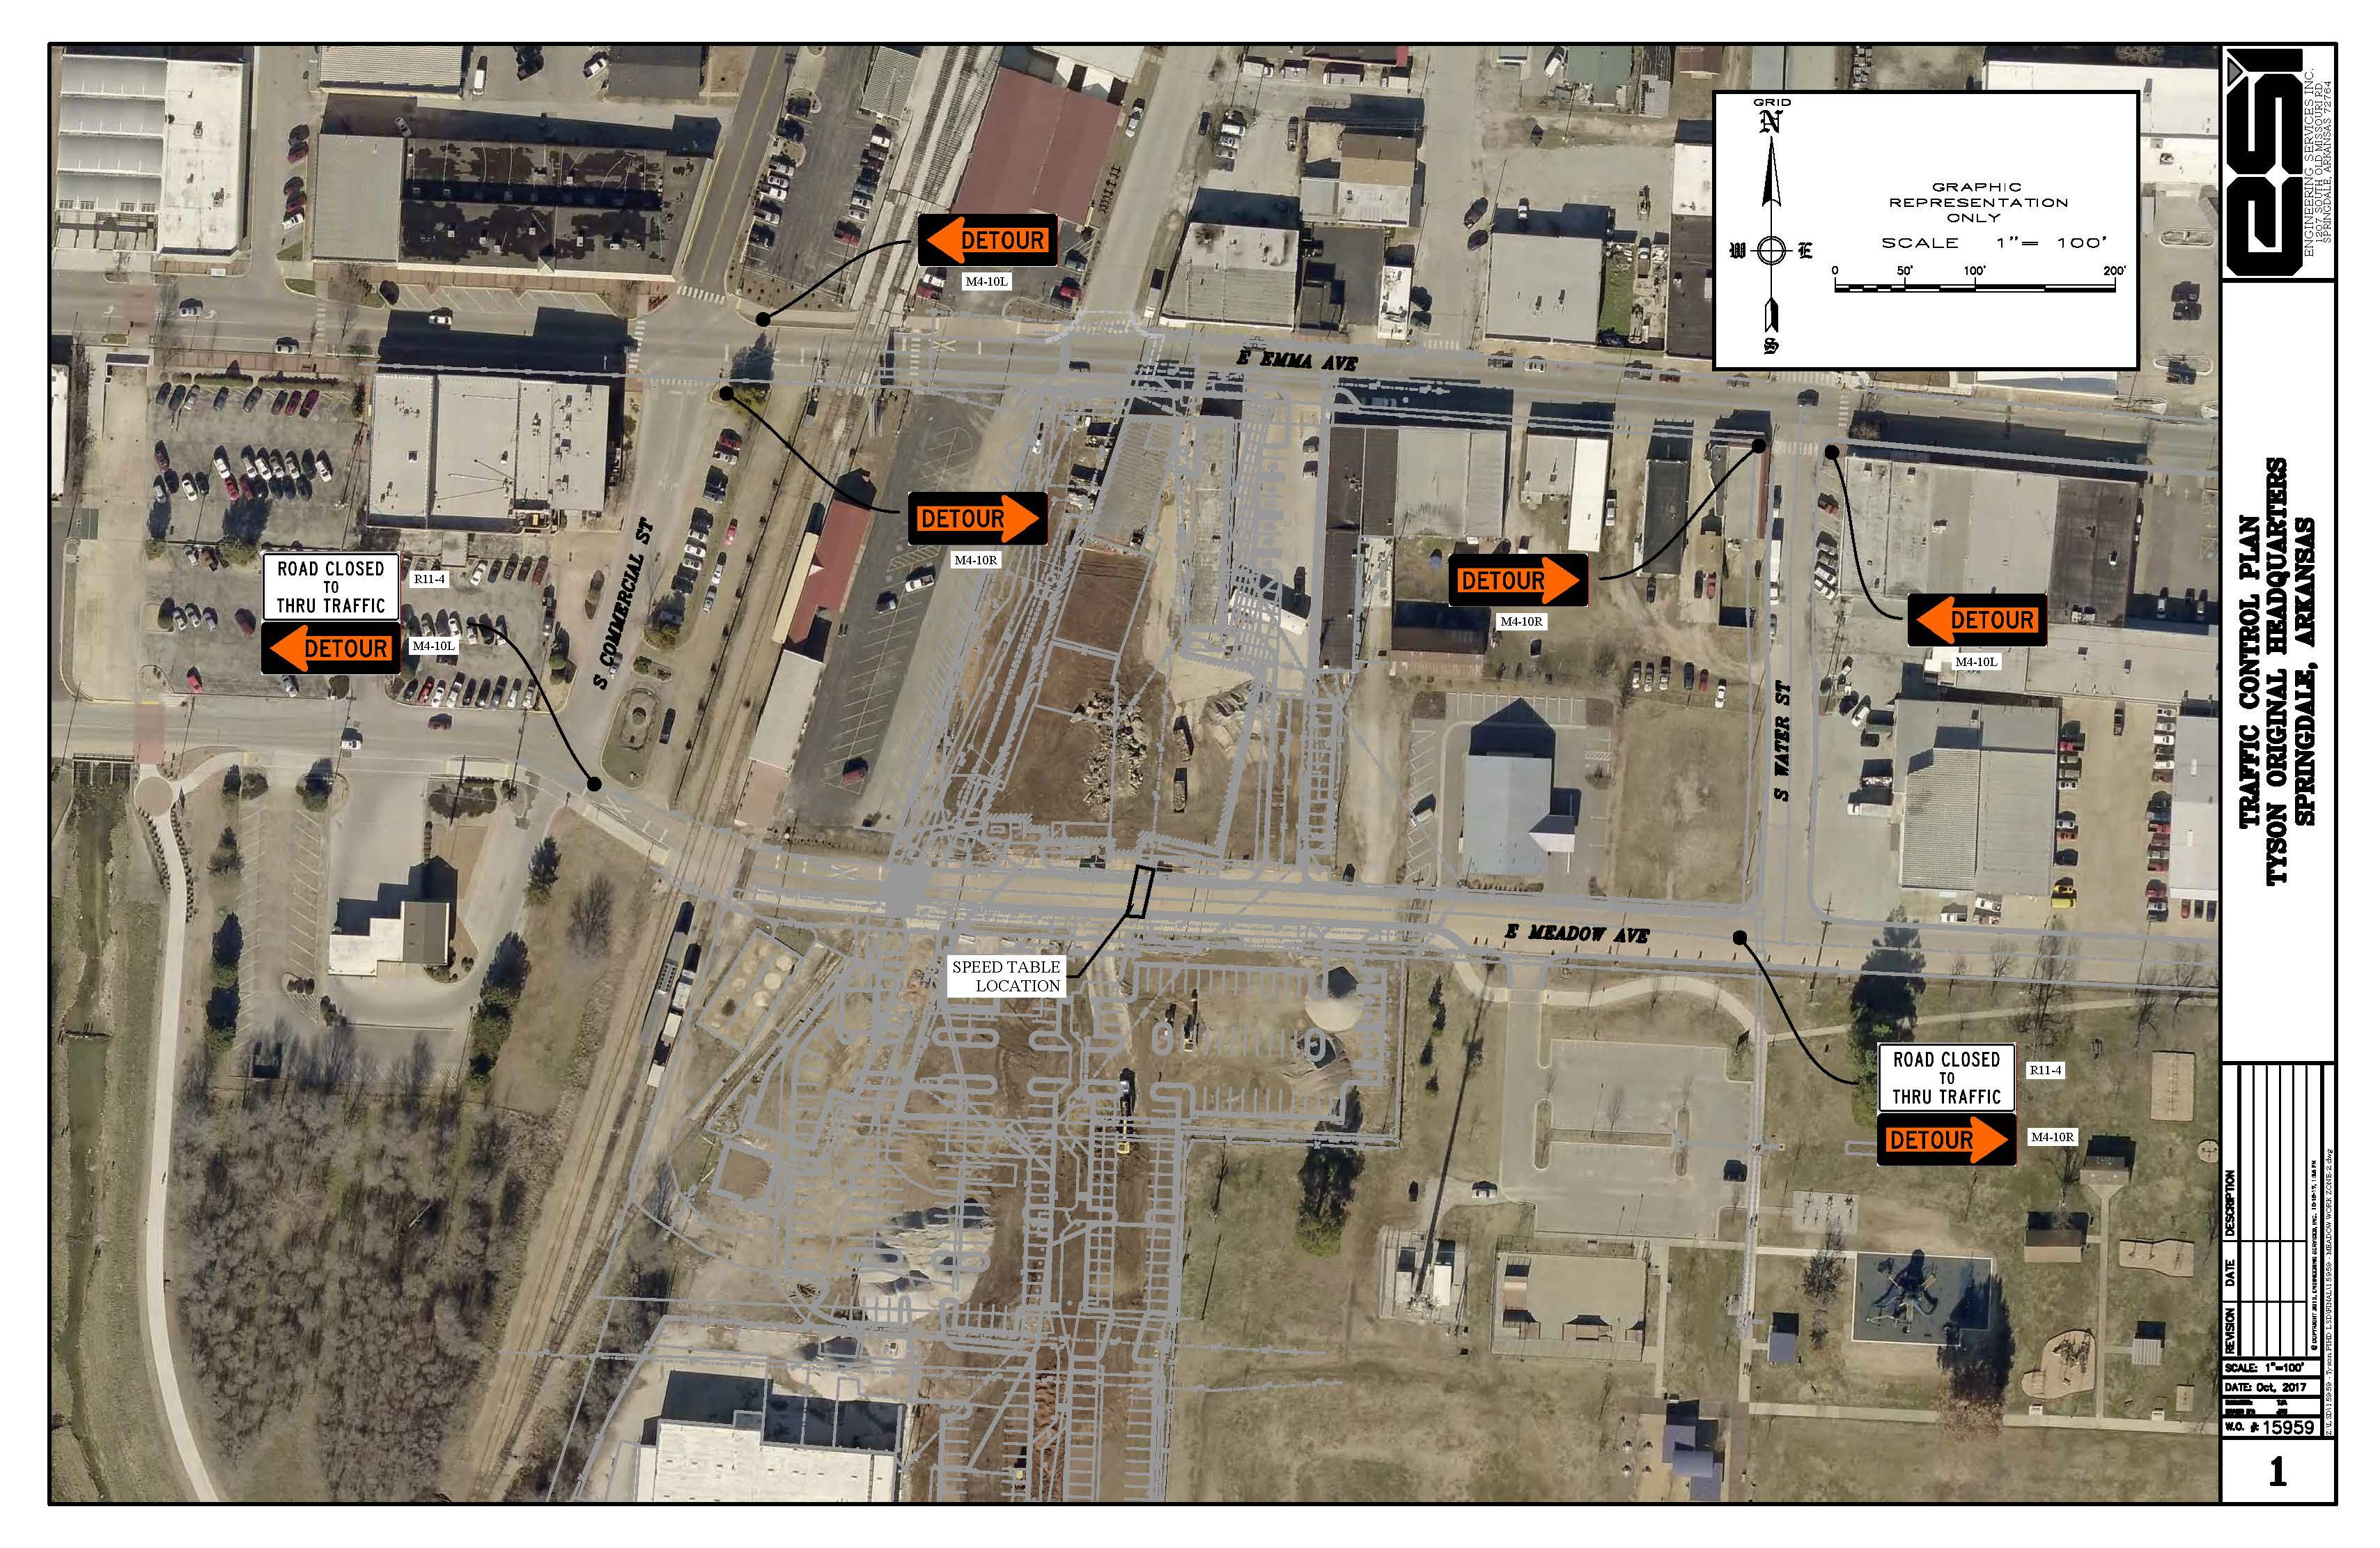 Meadow Ave. Closure - TYSON TRAFFIC CONTROL PLAN